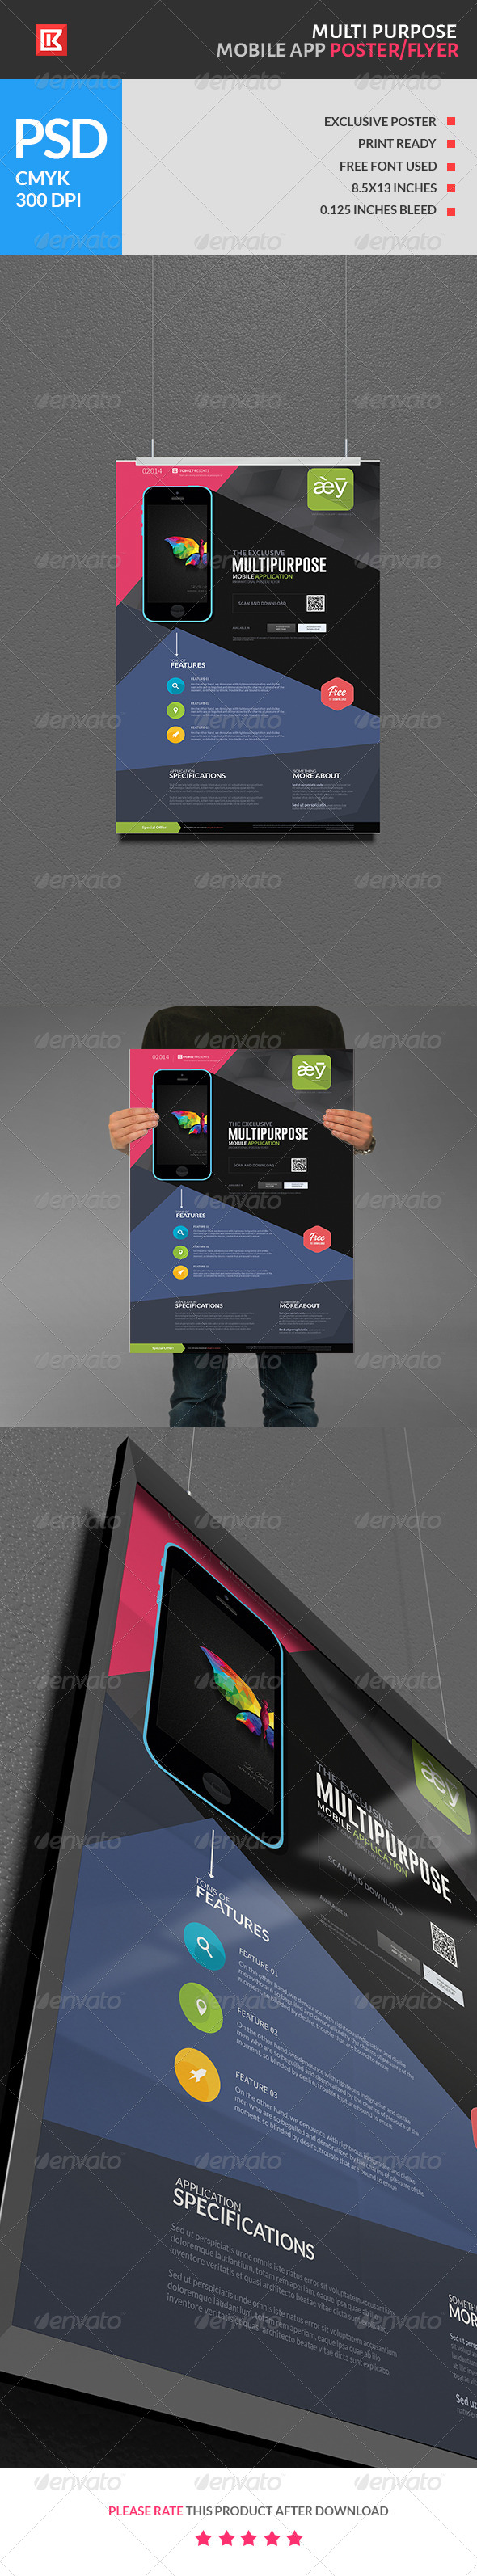 Multipurpose Mobile App Poster/Flyer - Miscellaneous Events